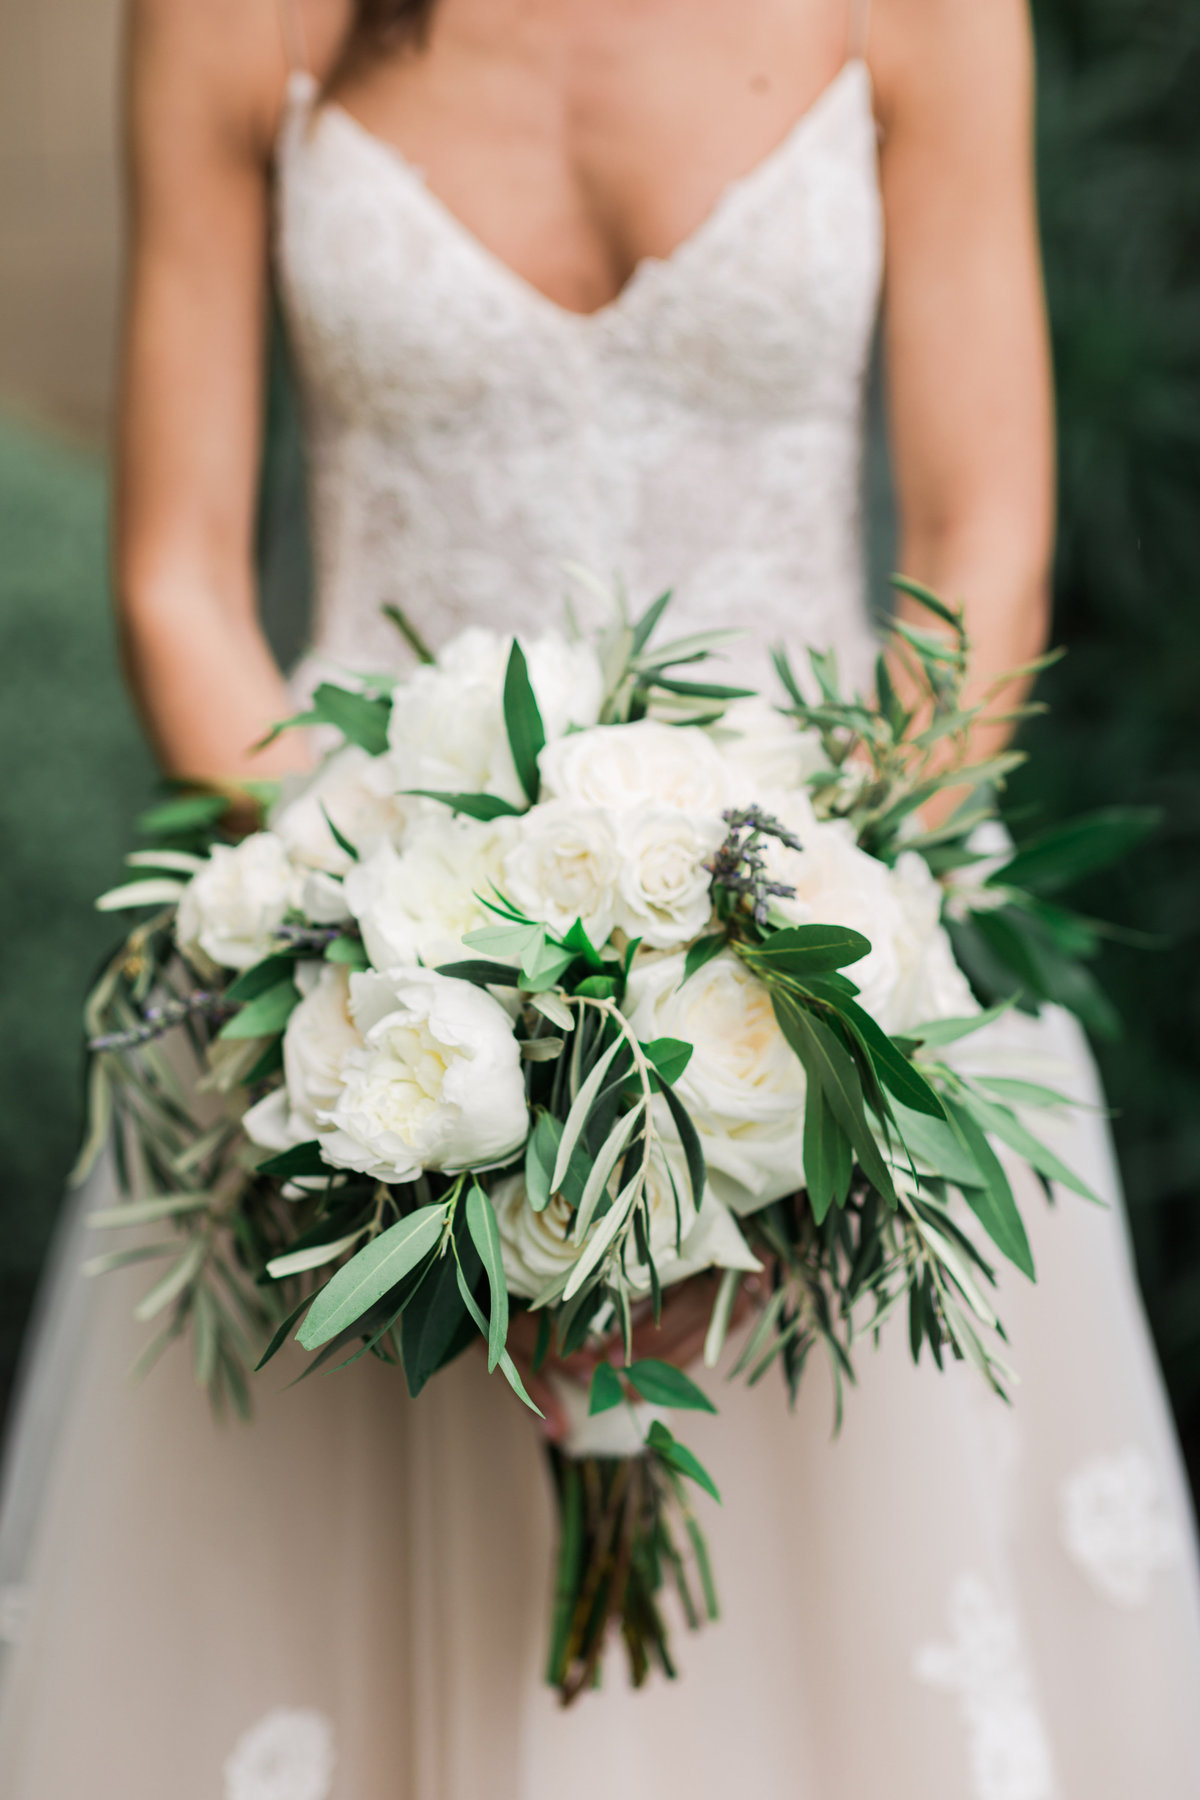 Palihouse_Cielo_Farms_Malibu_Rustic_Wedding_Valorie_Darling_Photography - 41 of 107